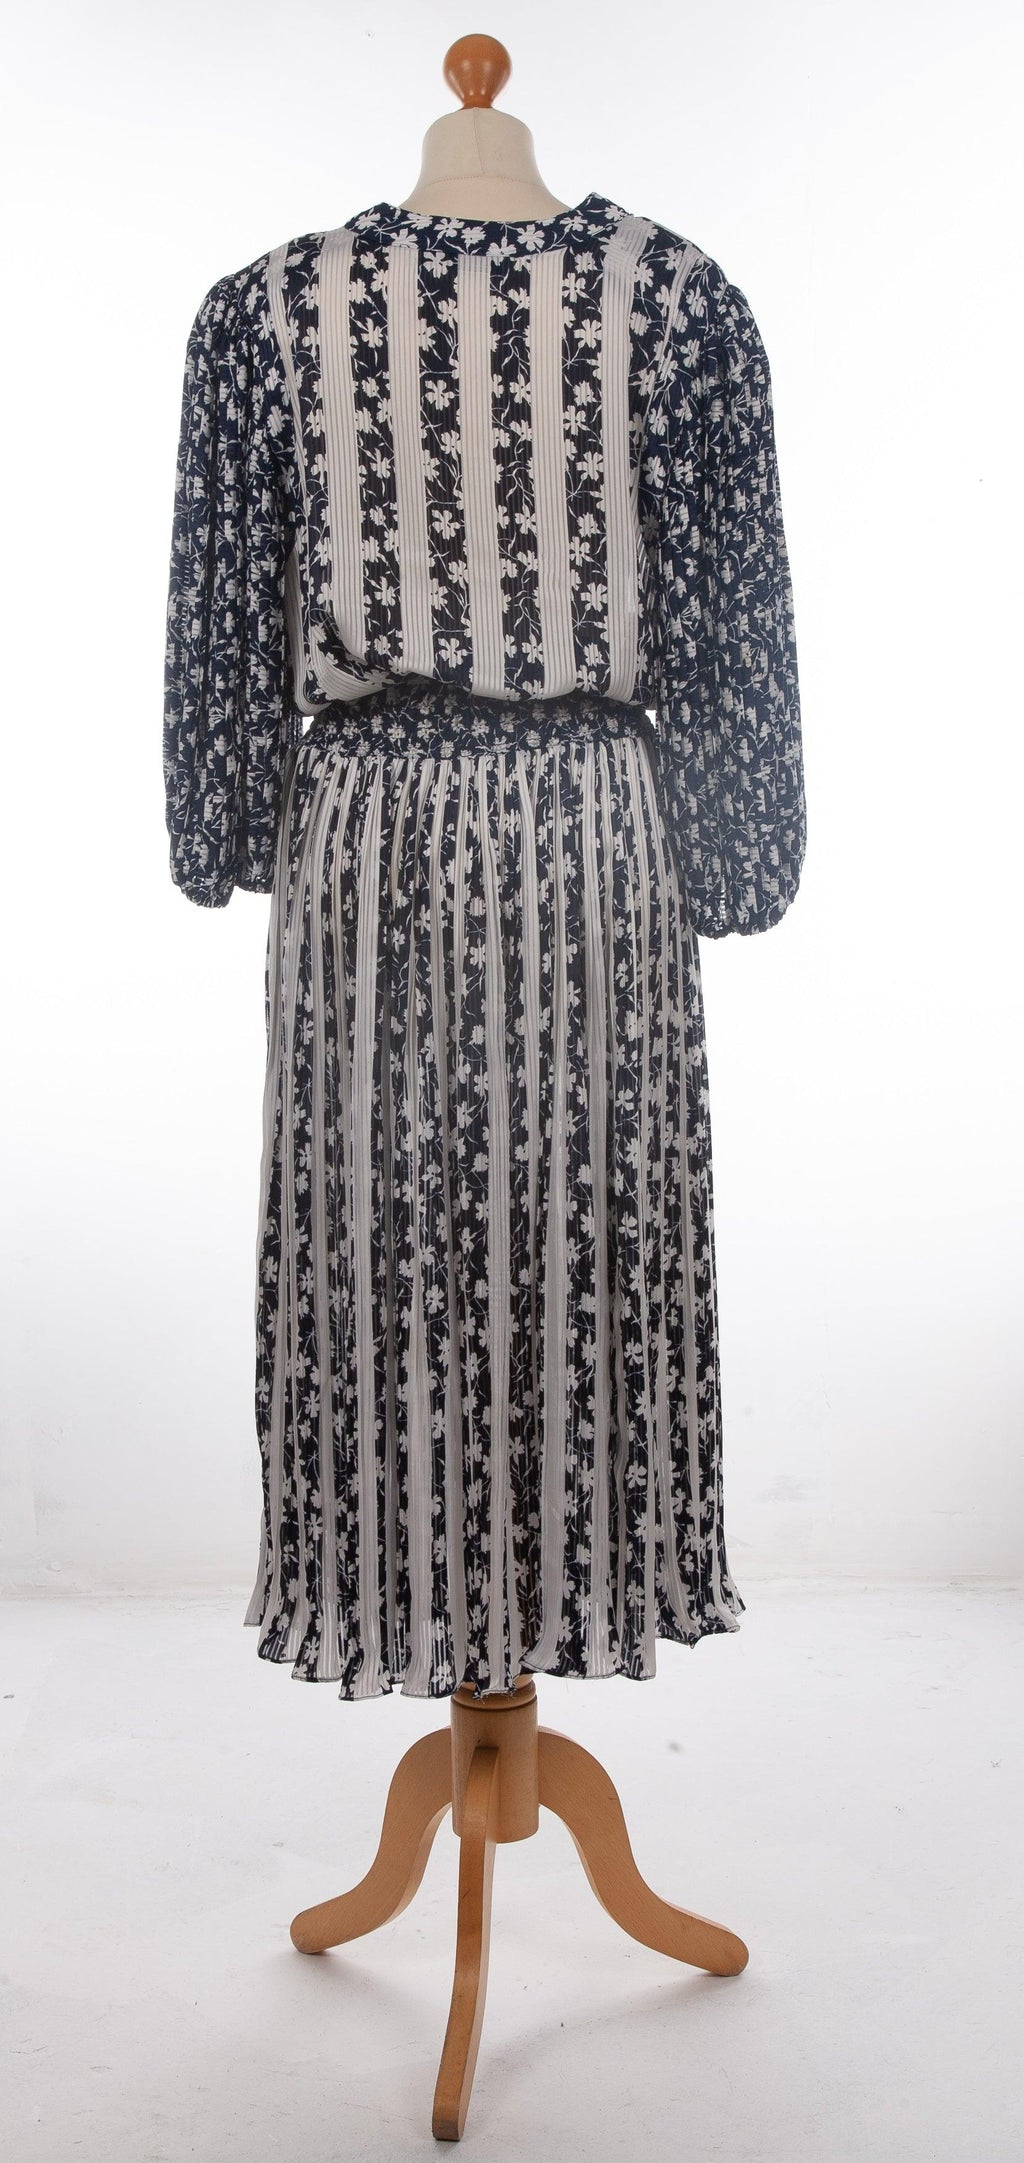 Janan Studio Maxi Dress with Pleats and Puff Sleeves Nay Blue and White Floral UK 12/14